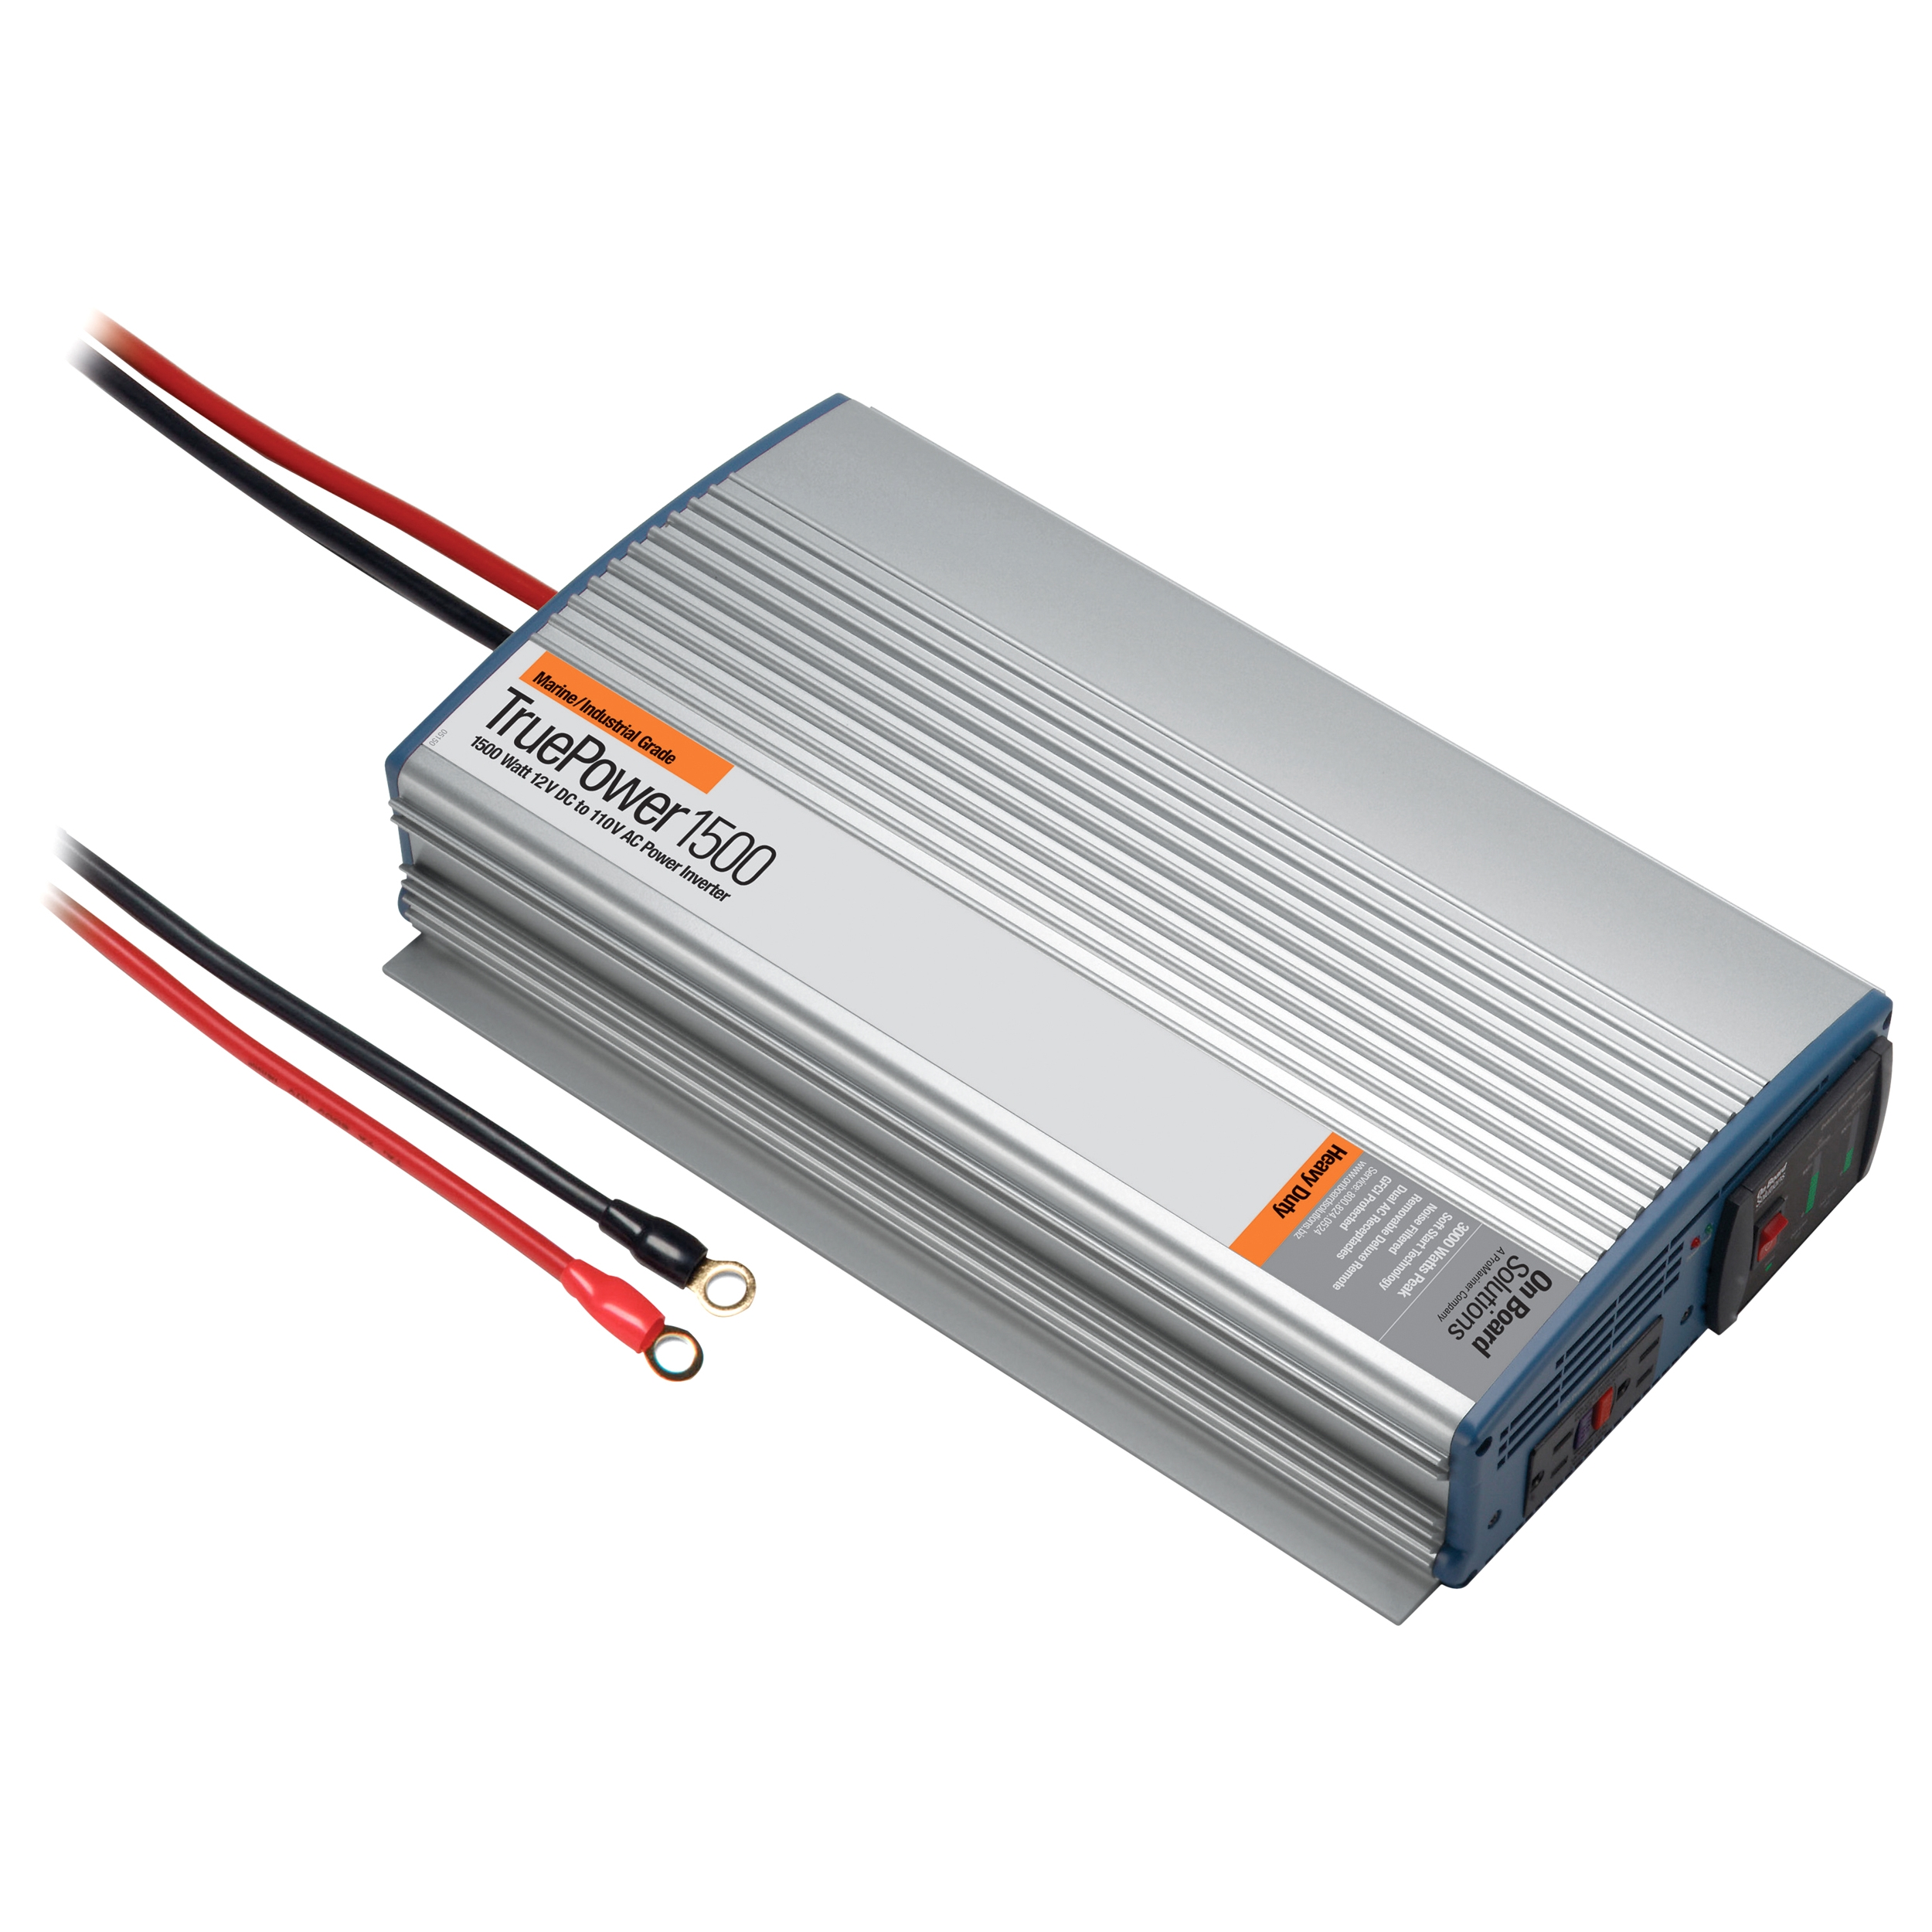 PROMARINER TRUEPOWER 1500 WATT 12V OUTPUT INVERTER